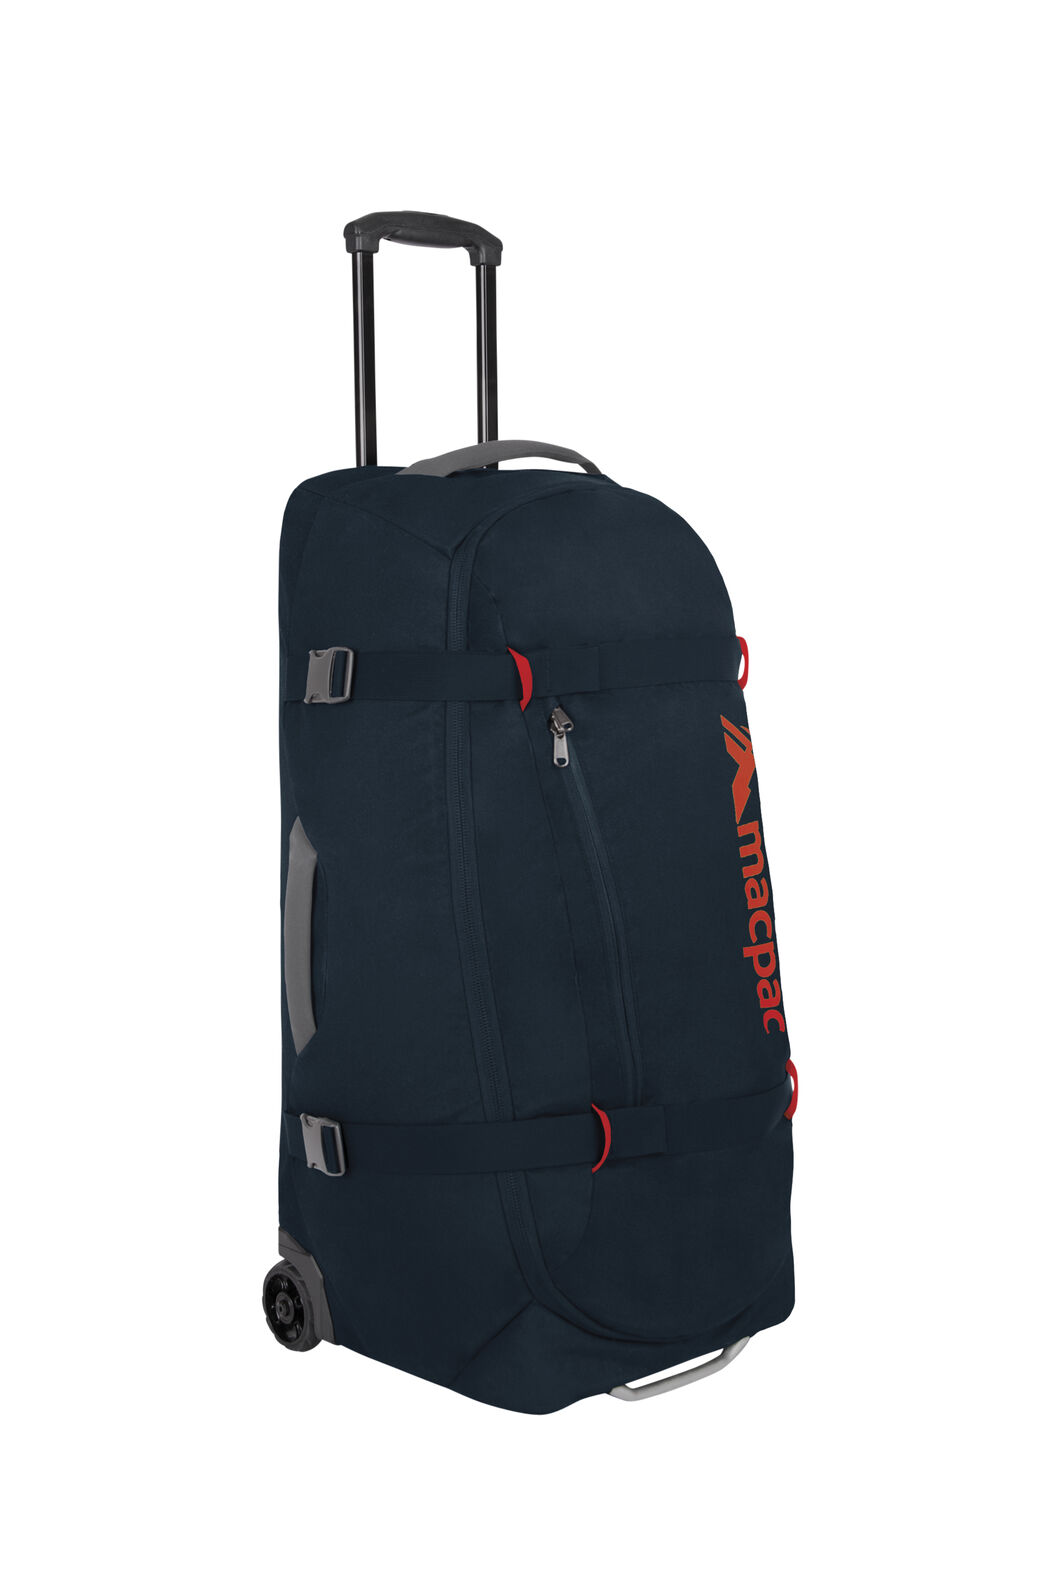 Macpac Global 80L Travel Bag, Carbon, hi-res